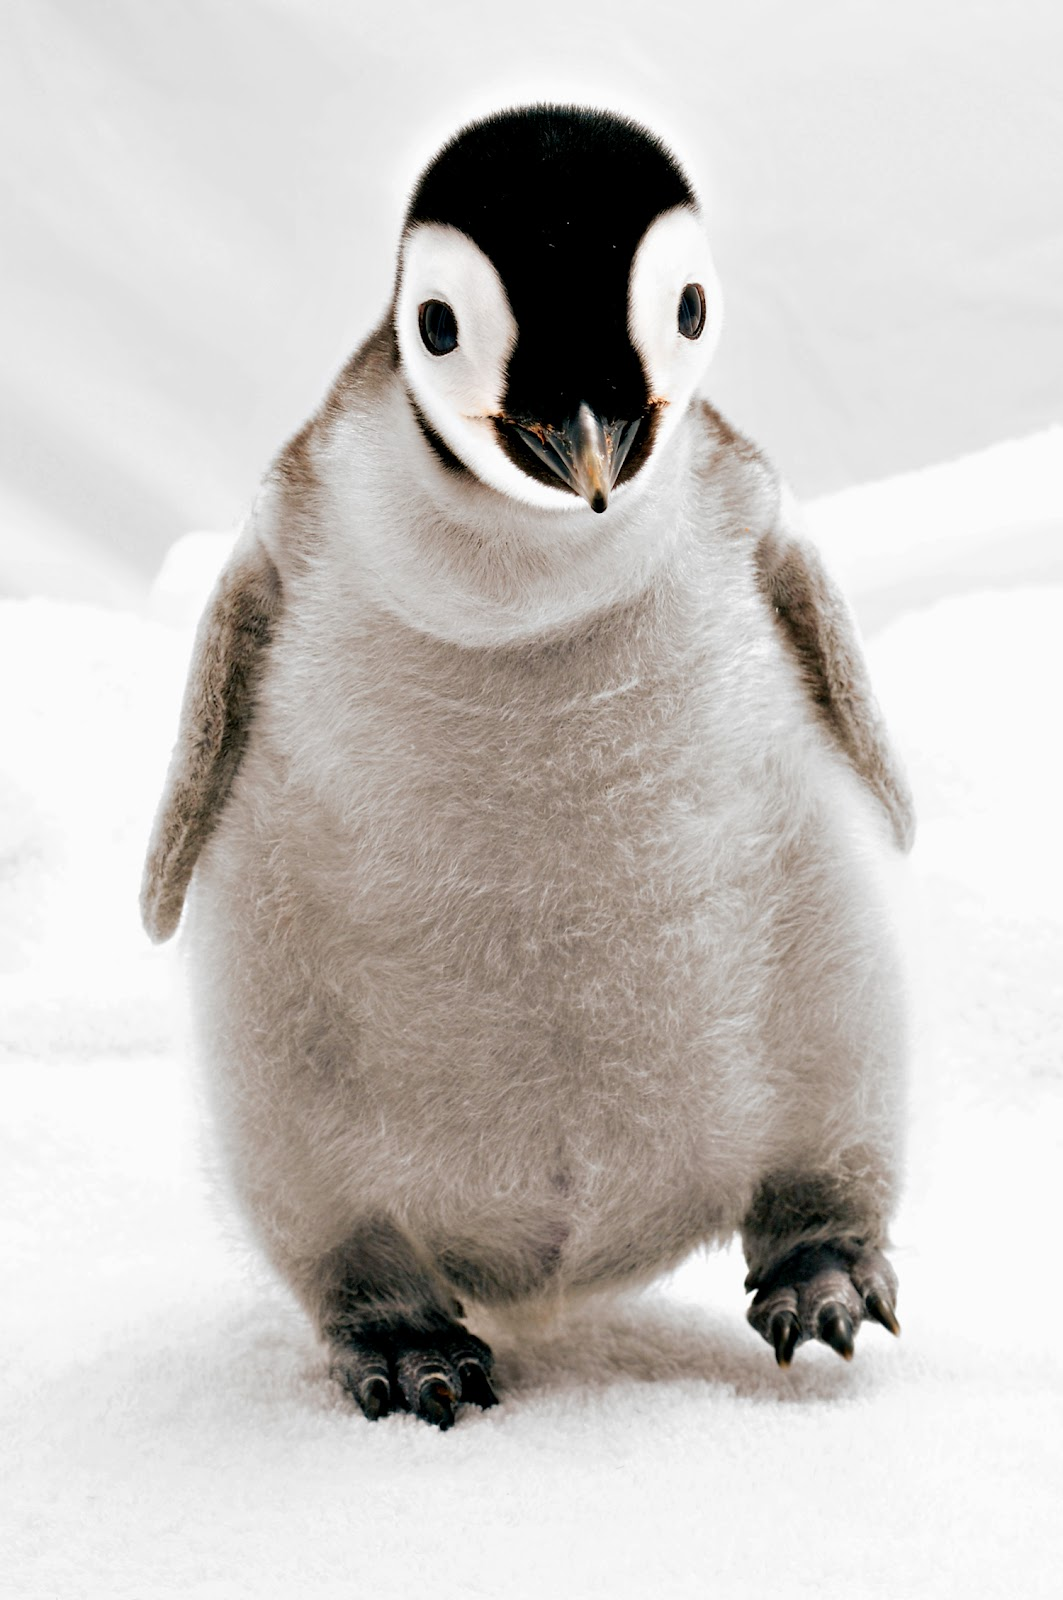 Cute baby emperor penguin - photo#16